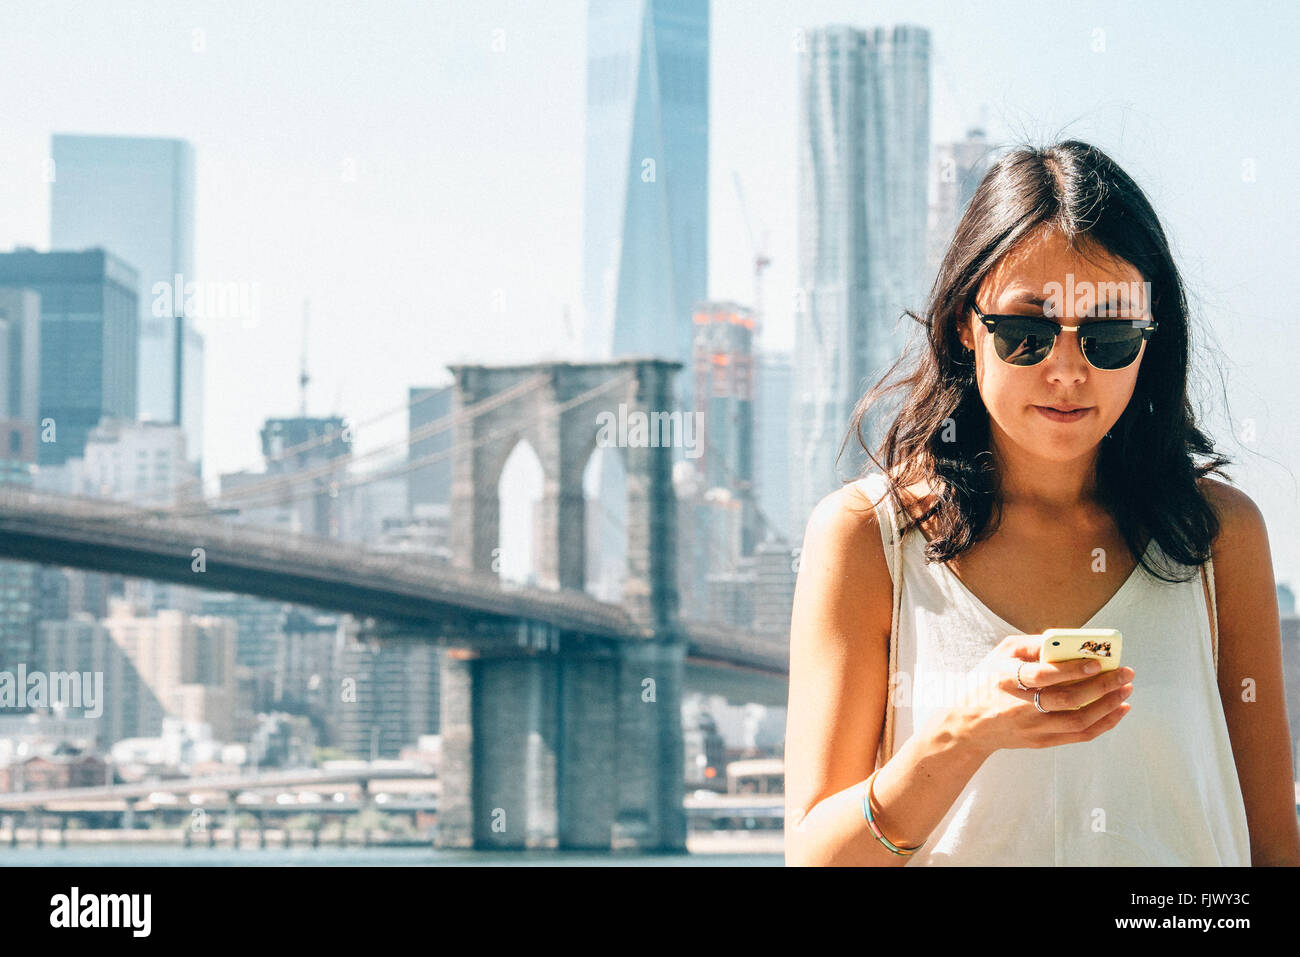 Young Woman Using Smart Phone contre Pont de Brooklyn Photo Stock